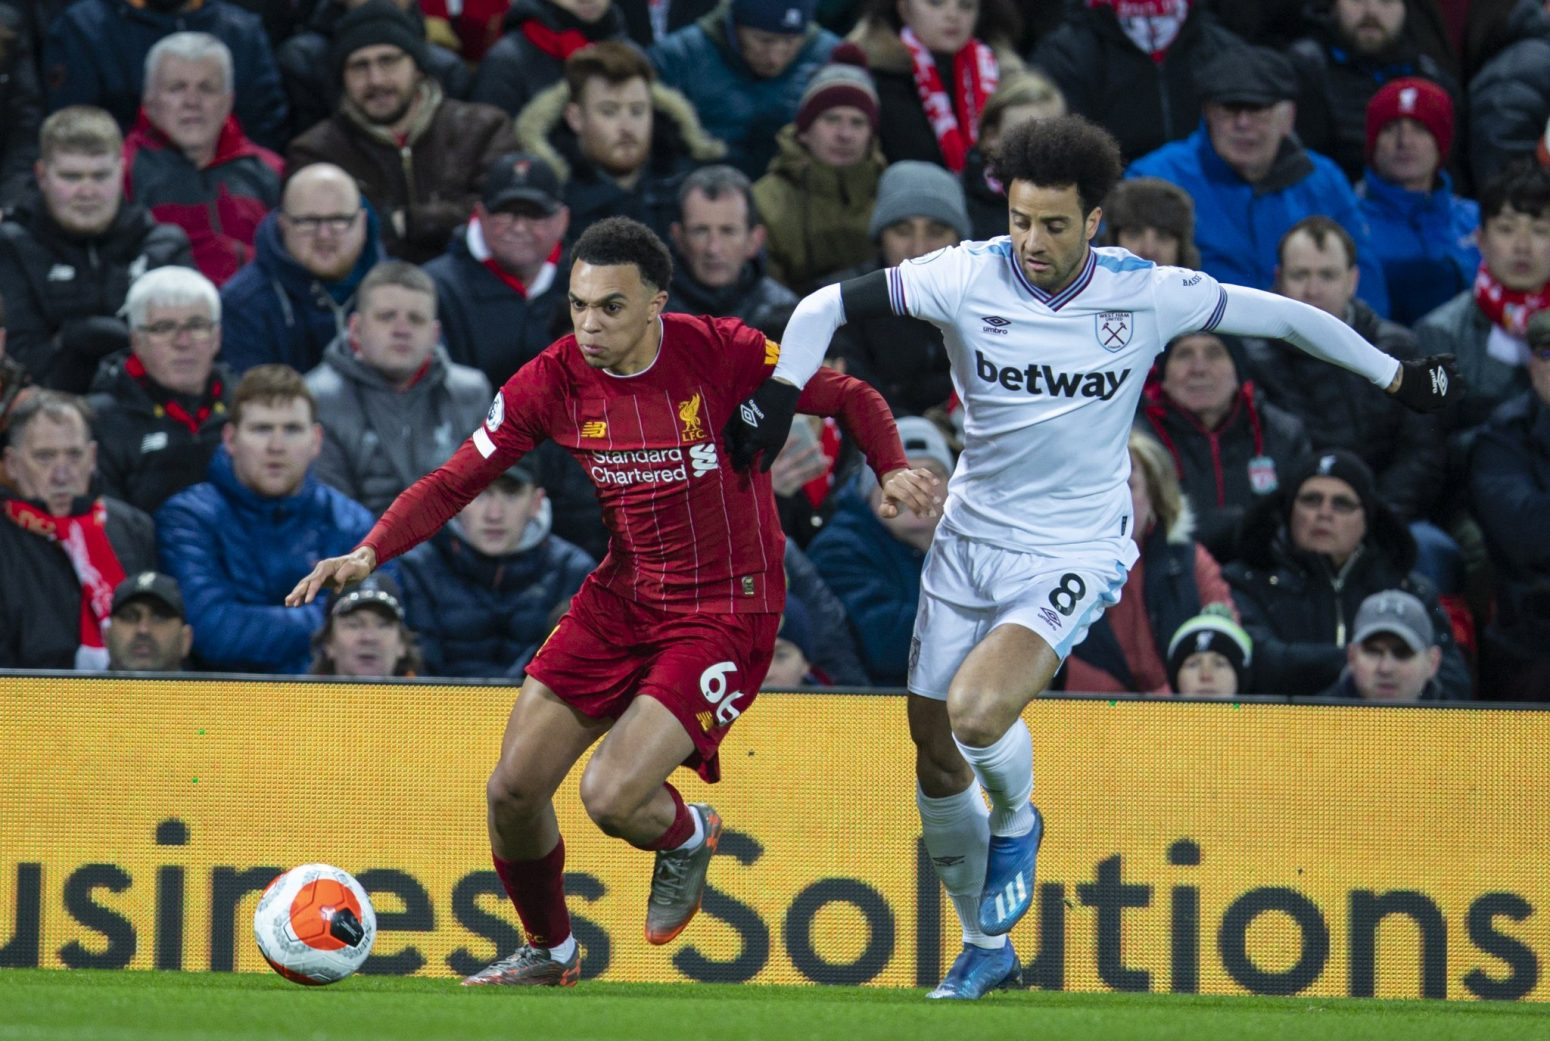 Liverpool 3-2 West Ham United – As it happened & reaction